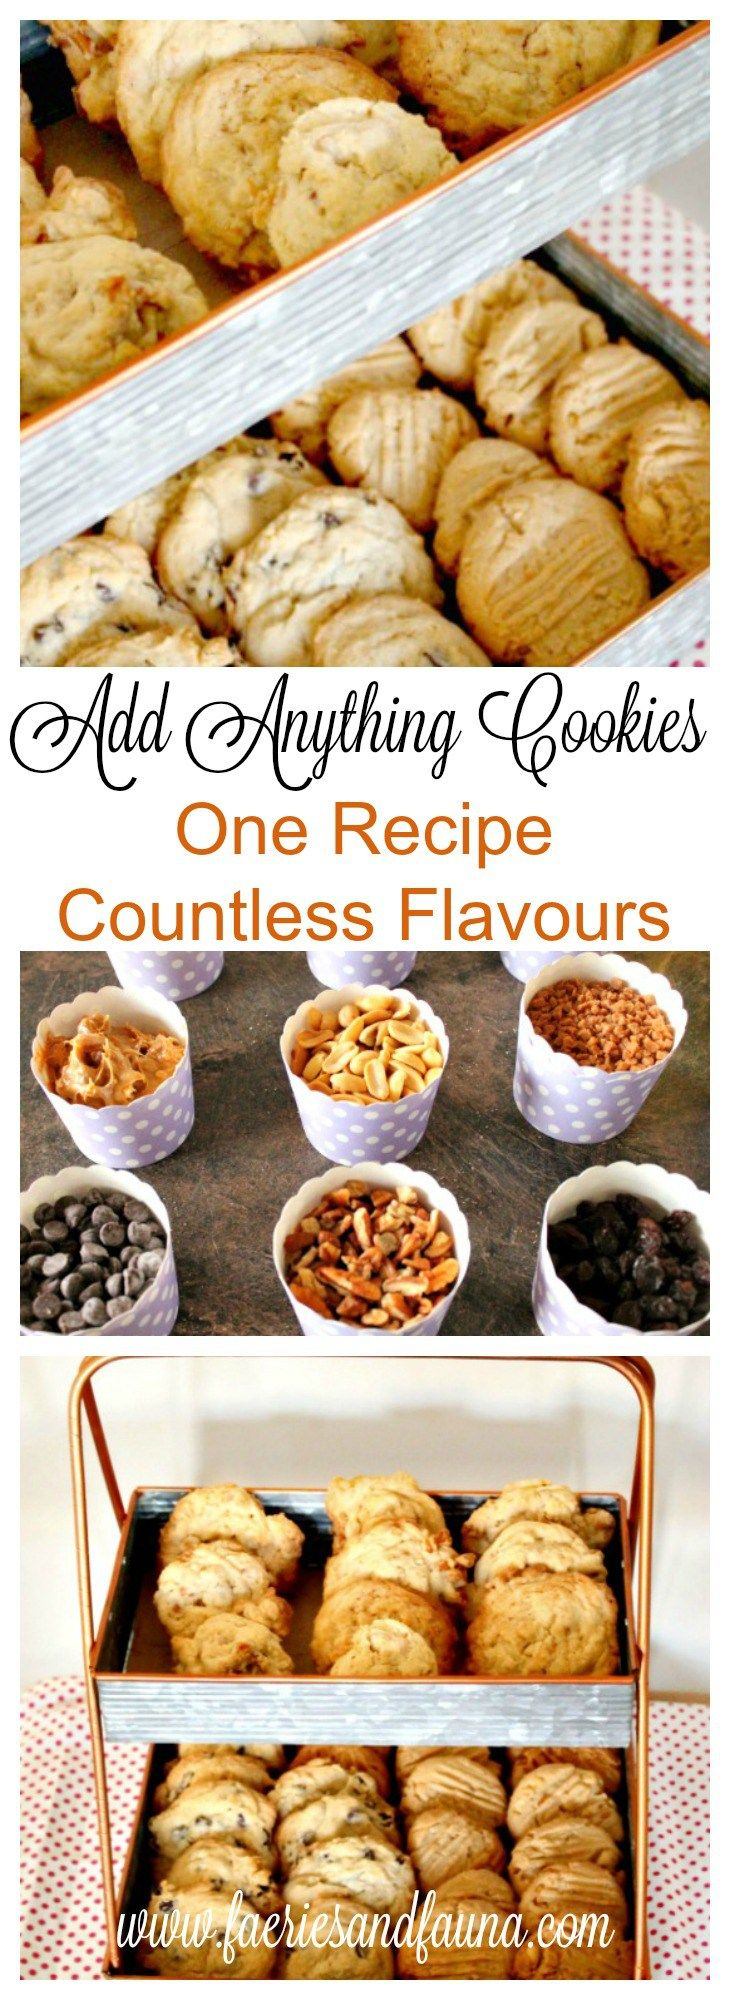 Cookie Recipe, Drop Cookies, Cookies, Chocolate Chip Cookie Recipe, Peanut Butter Cookie Recipe, Coconut Cookies Recipe, Raisin Cookie Recipe, Add Anything Cookie Recipe, Add Anything Cookies